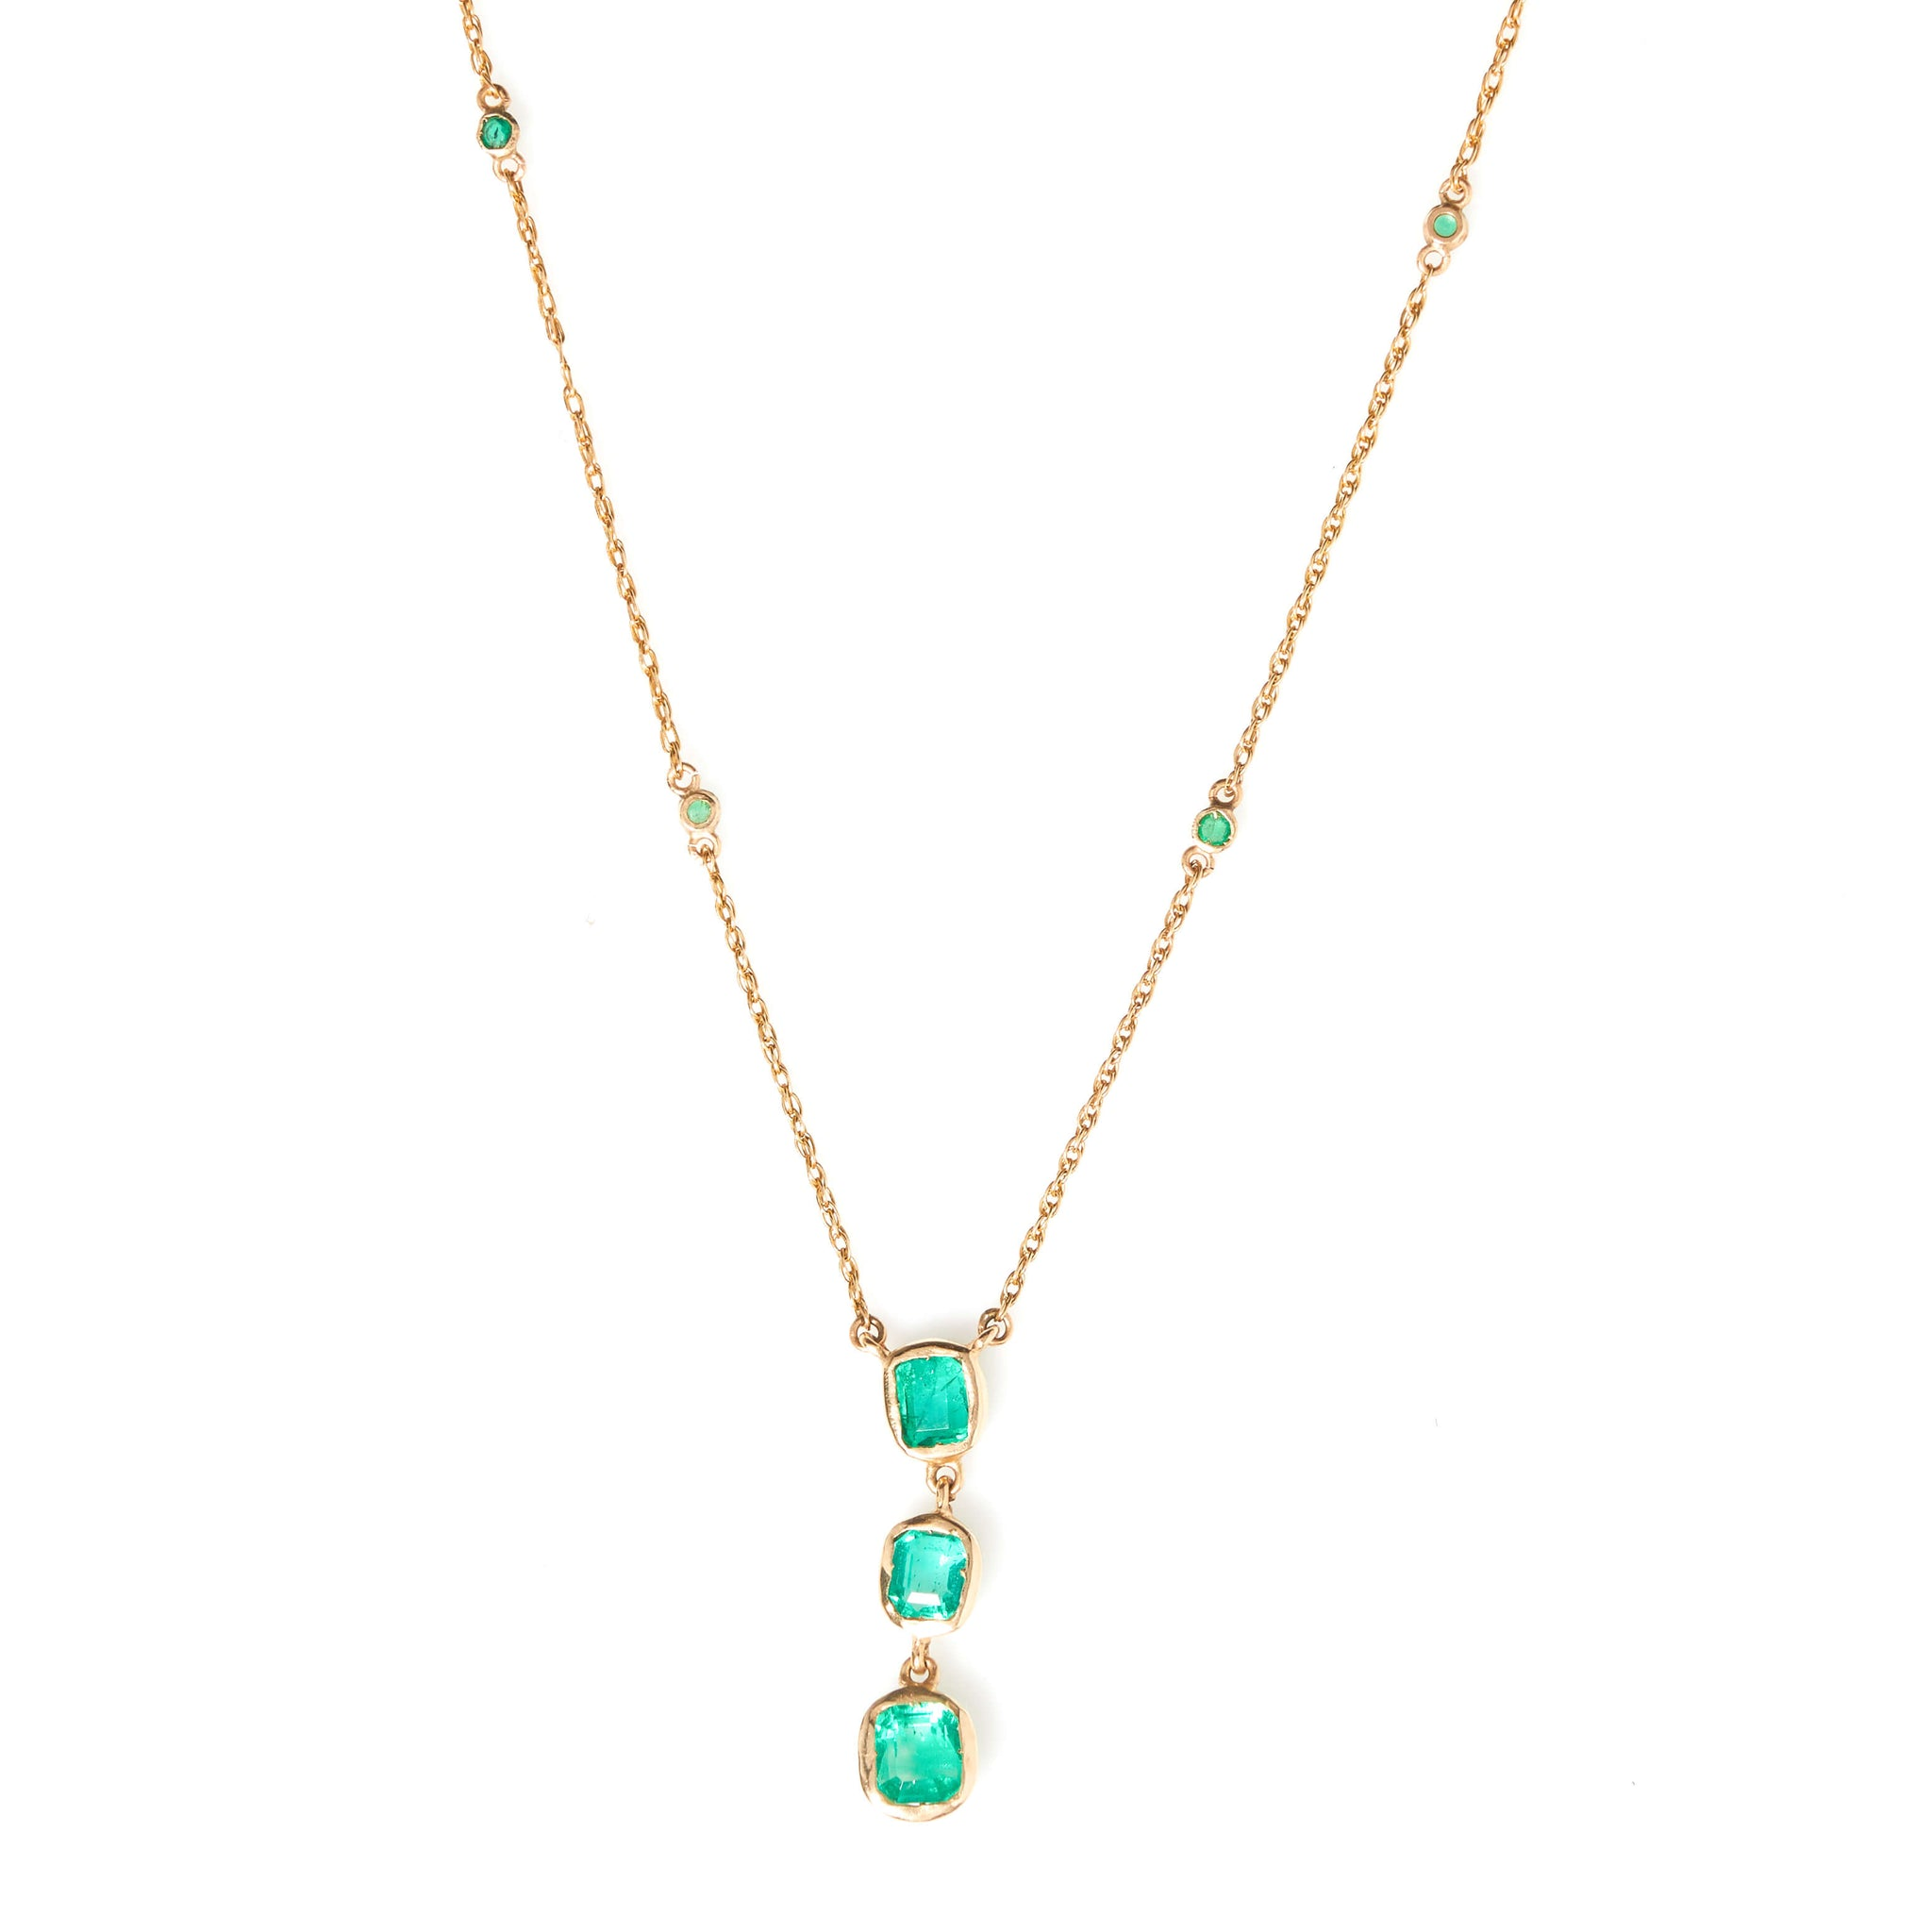 Emeralds in Yellow Gold Necklace - Sindur Style